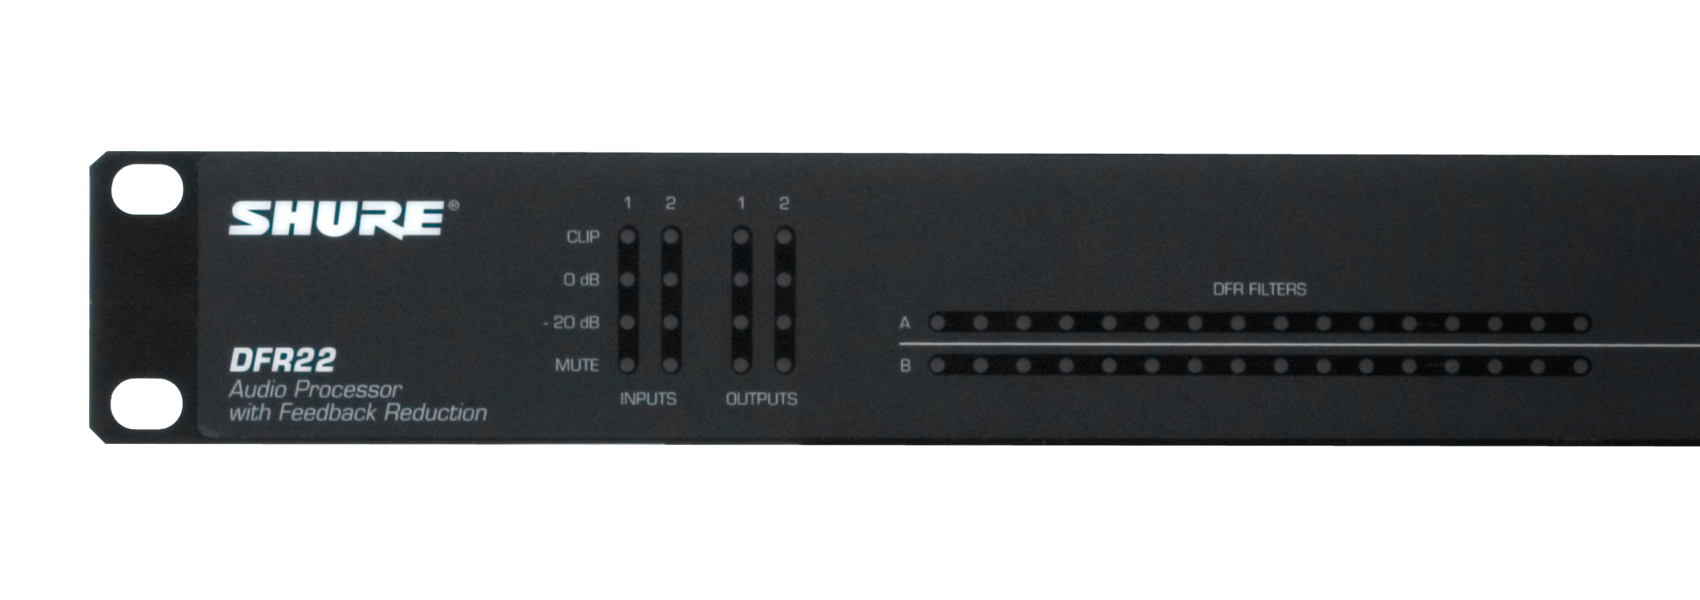 Illustratie Shure DFR22 audio processor